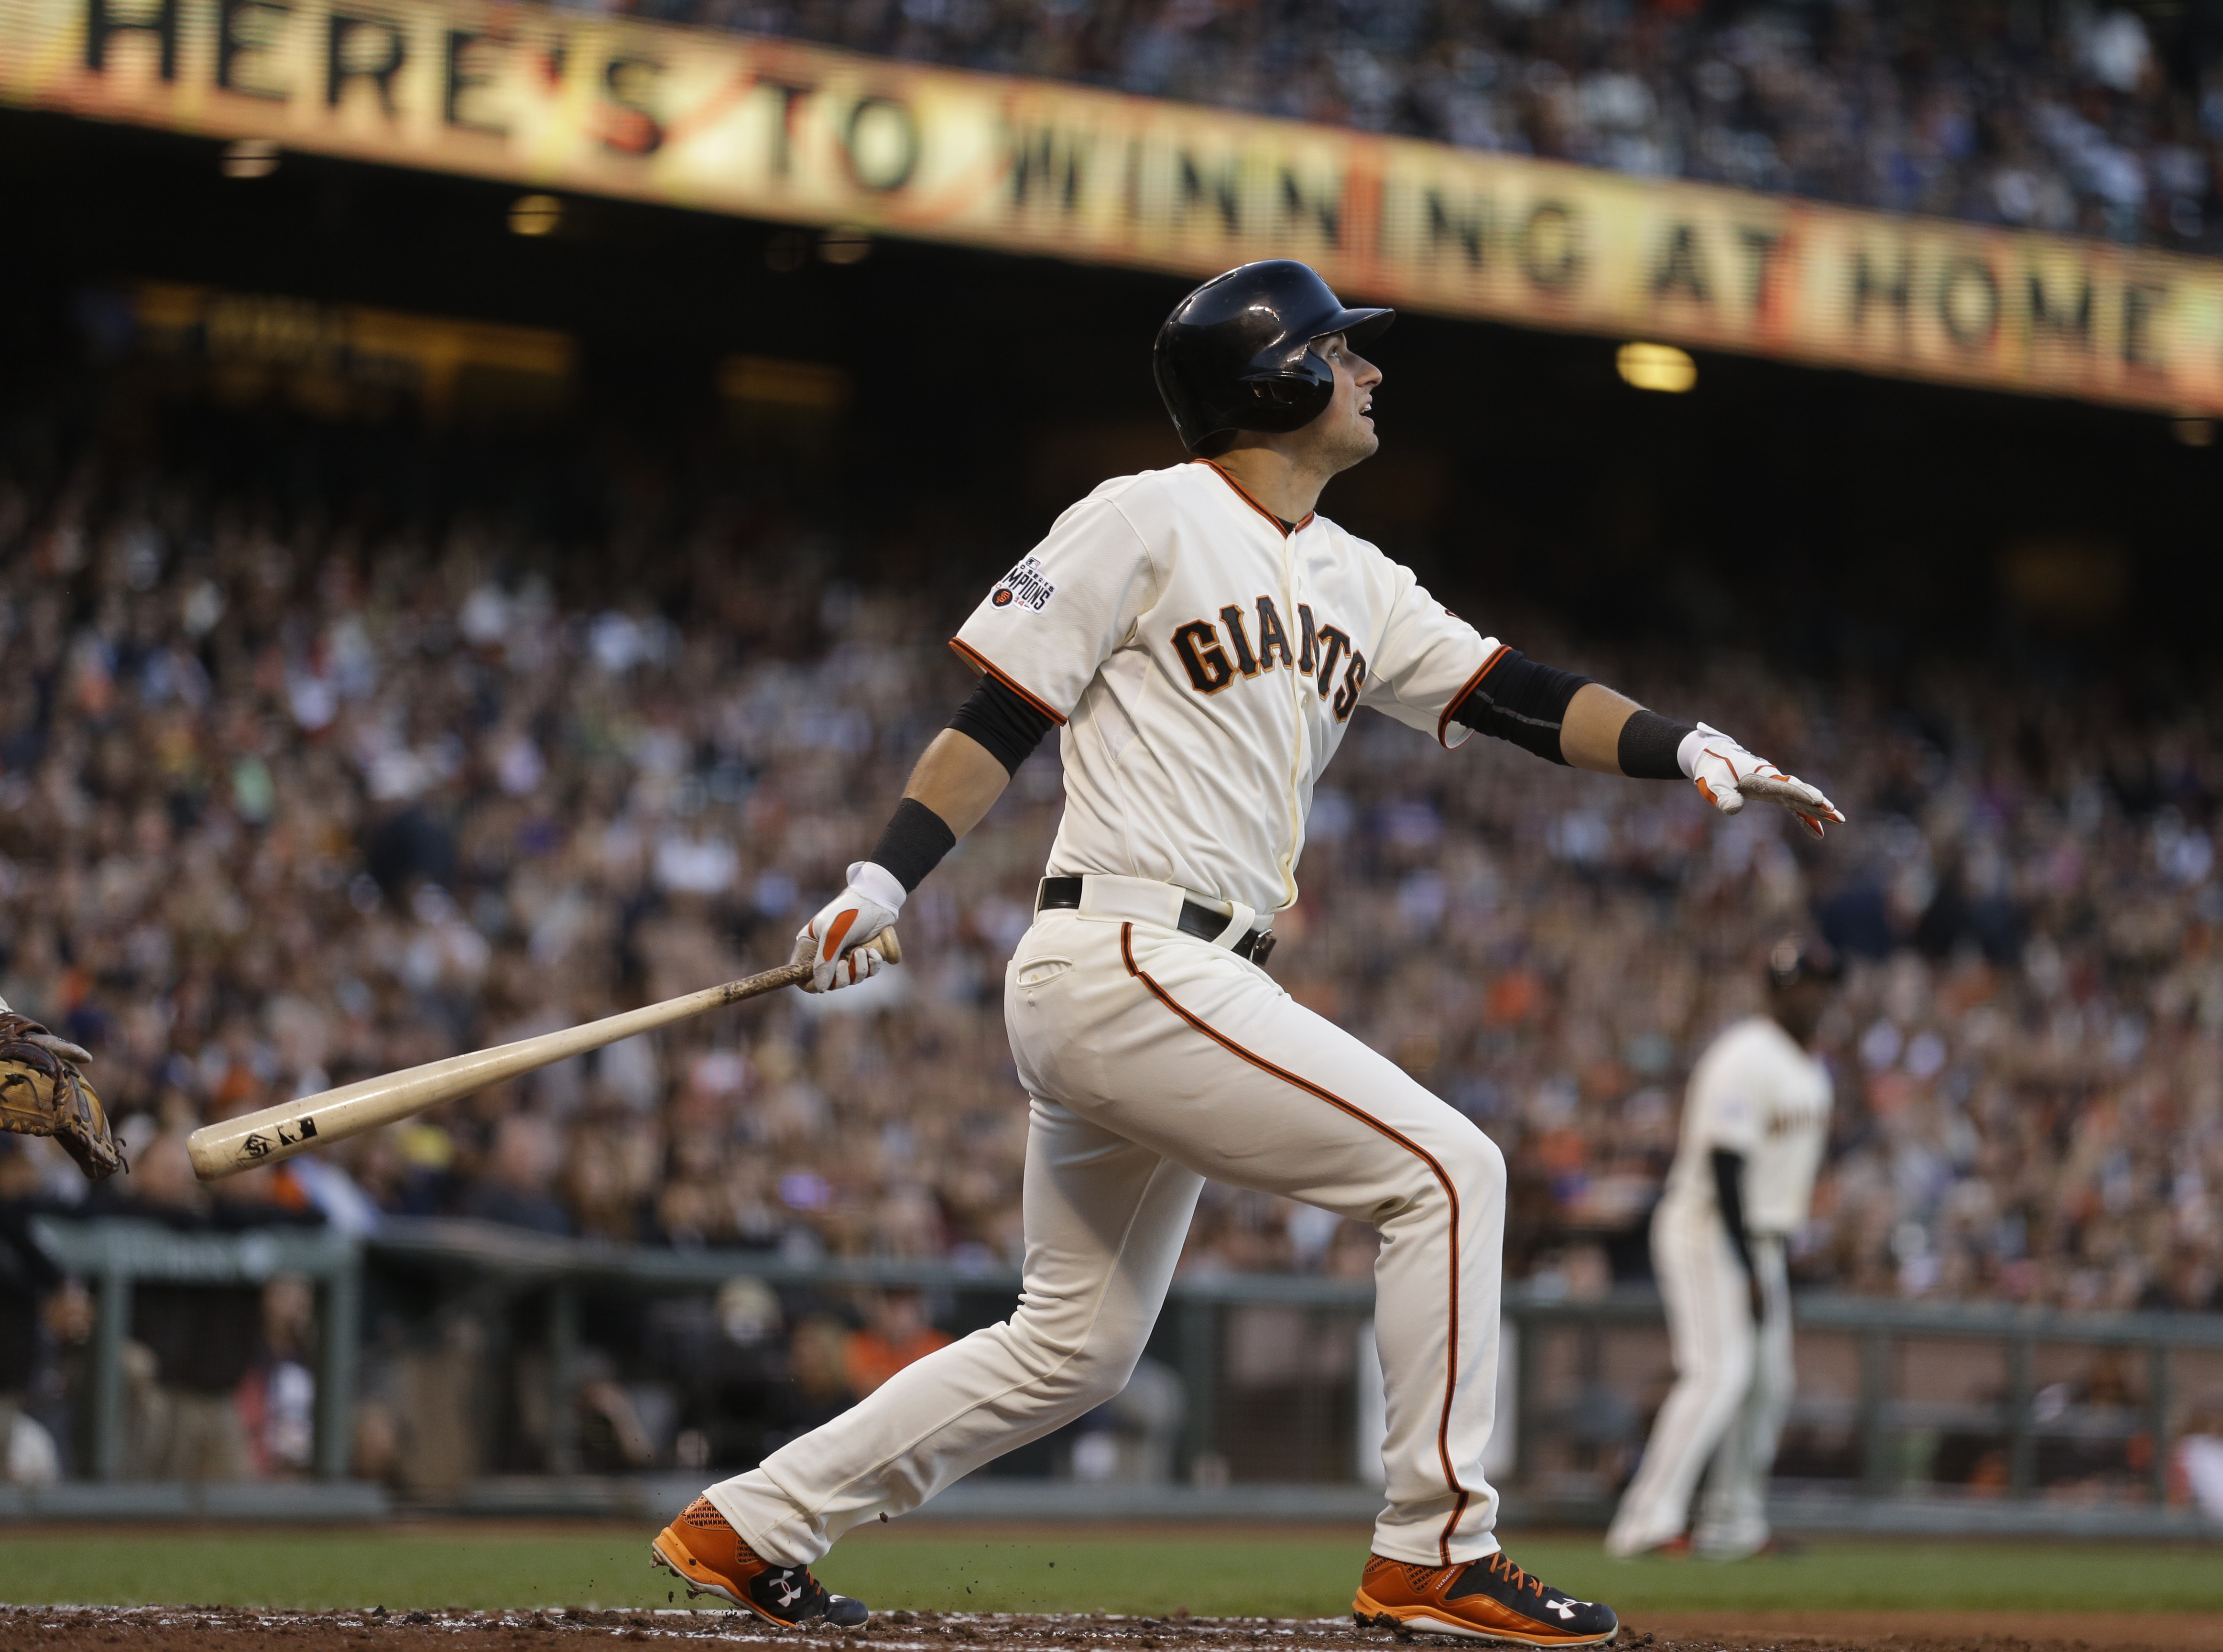 San Francisco Giants' Joe Panik swings for an RBI sacrifice fly off San Diego Padres' Ian Kennedy in the third inning of a baseball game Wednesday, June 24, 2015, in San Francisco. (AP Photo/Ben Margot)